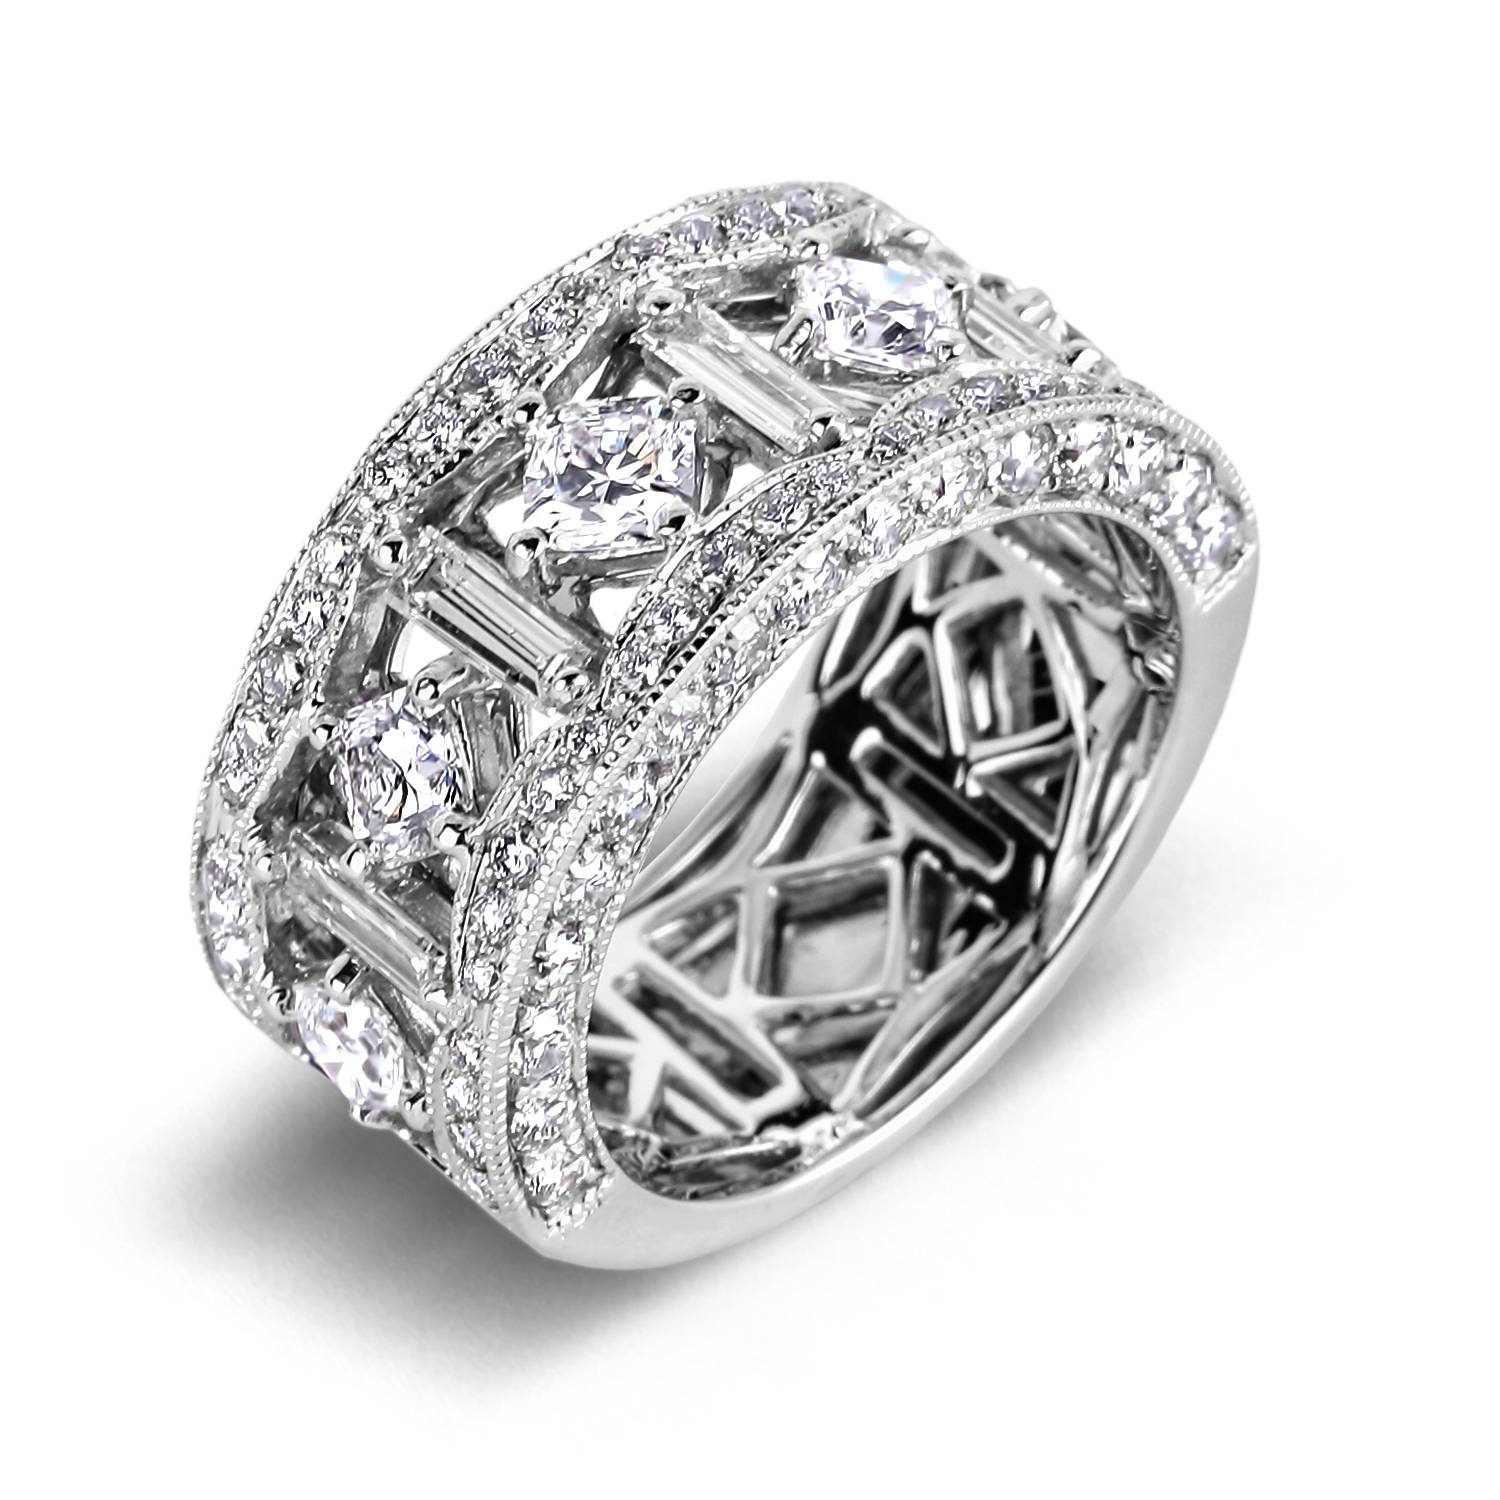 Wedding Anniversary Rings Diamonds | Wedding Ideas Intended For Most Current 5 Stone Diamond Anniversary Rings (View 21 of 25)